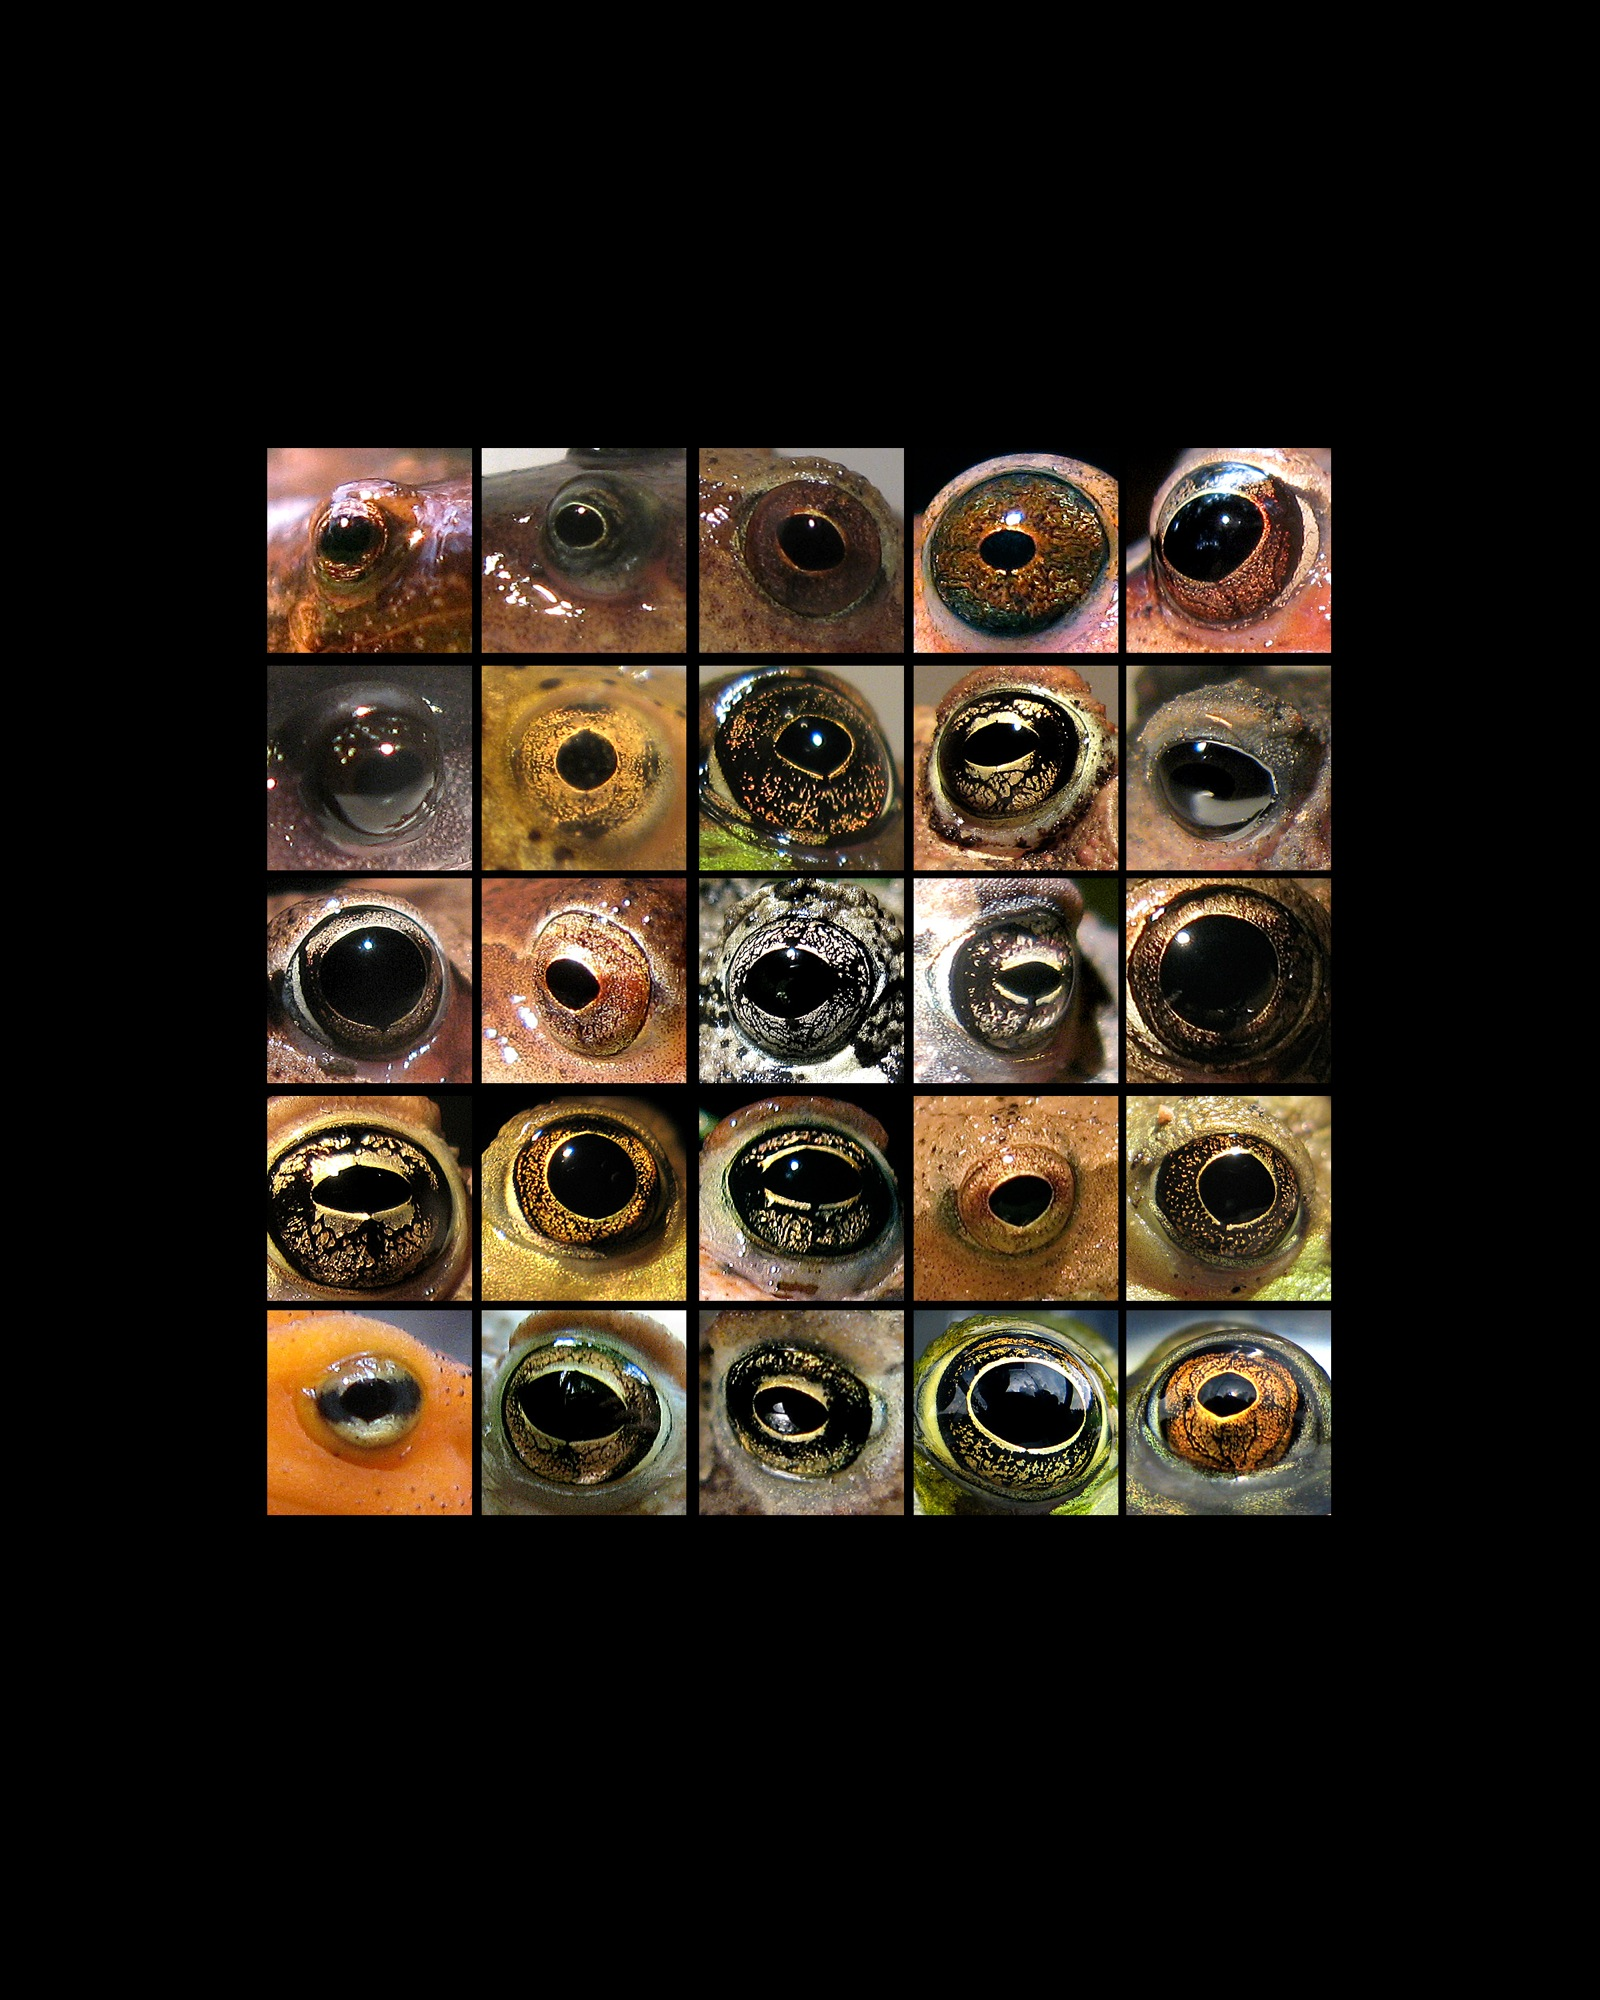 amphibian eyes grid 8x10 copy 3.jpg